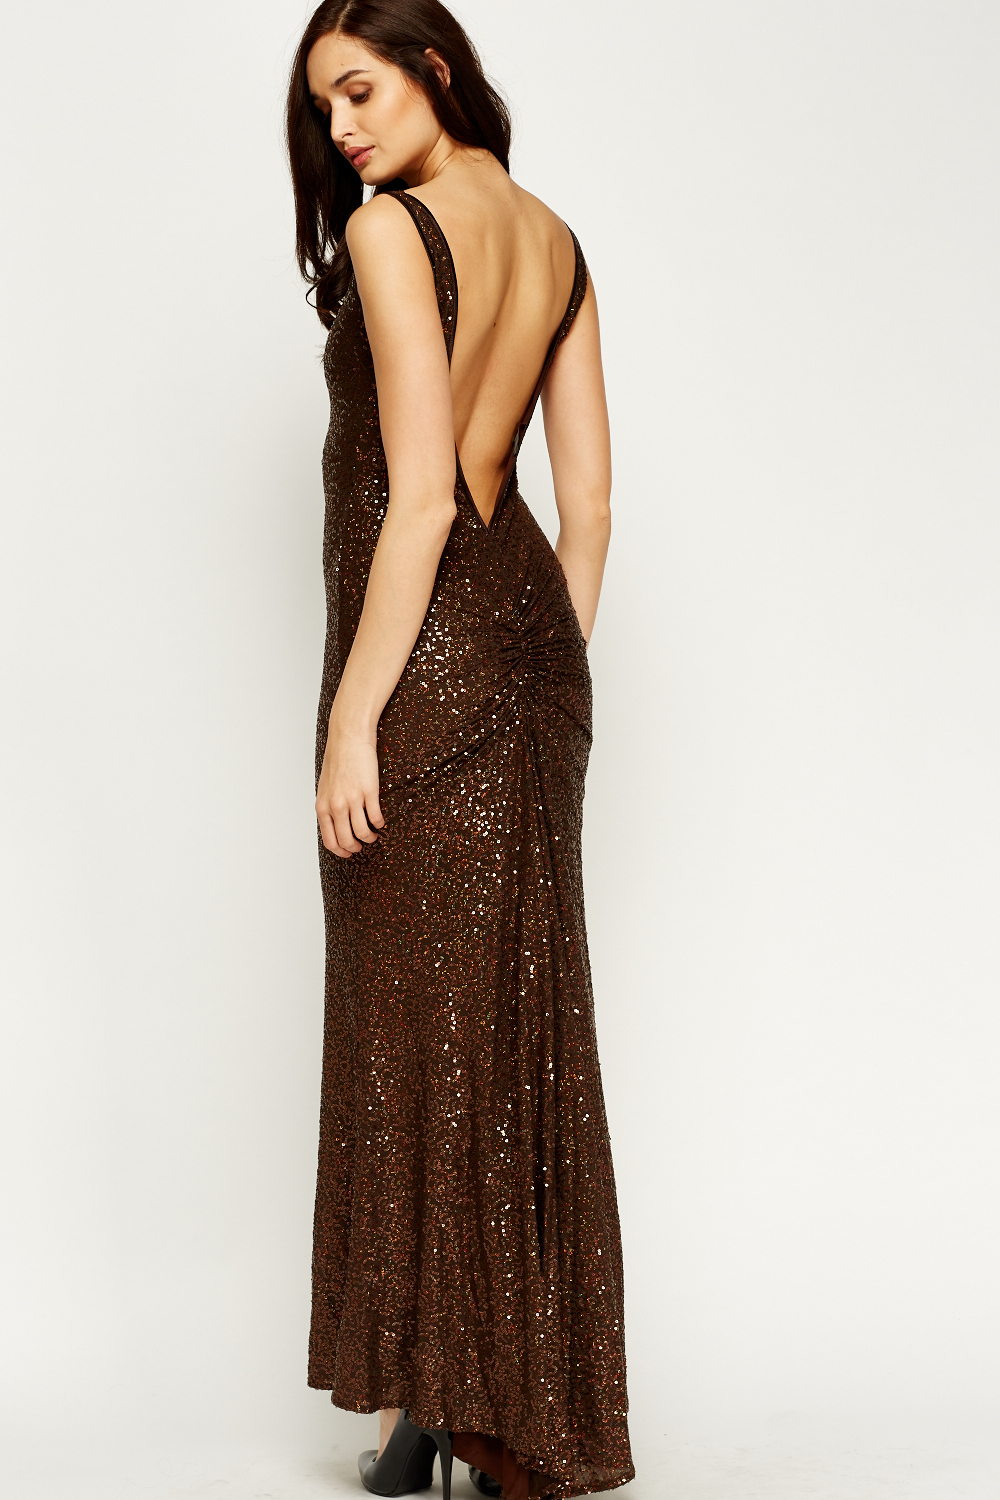 7b782c8ae8a2 Chocolate Sequin Drop Back Maxi Dress - Just £5